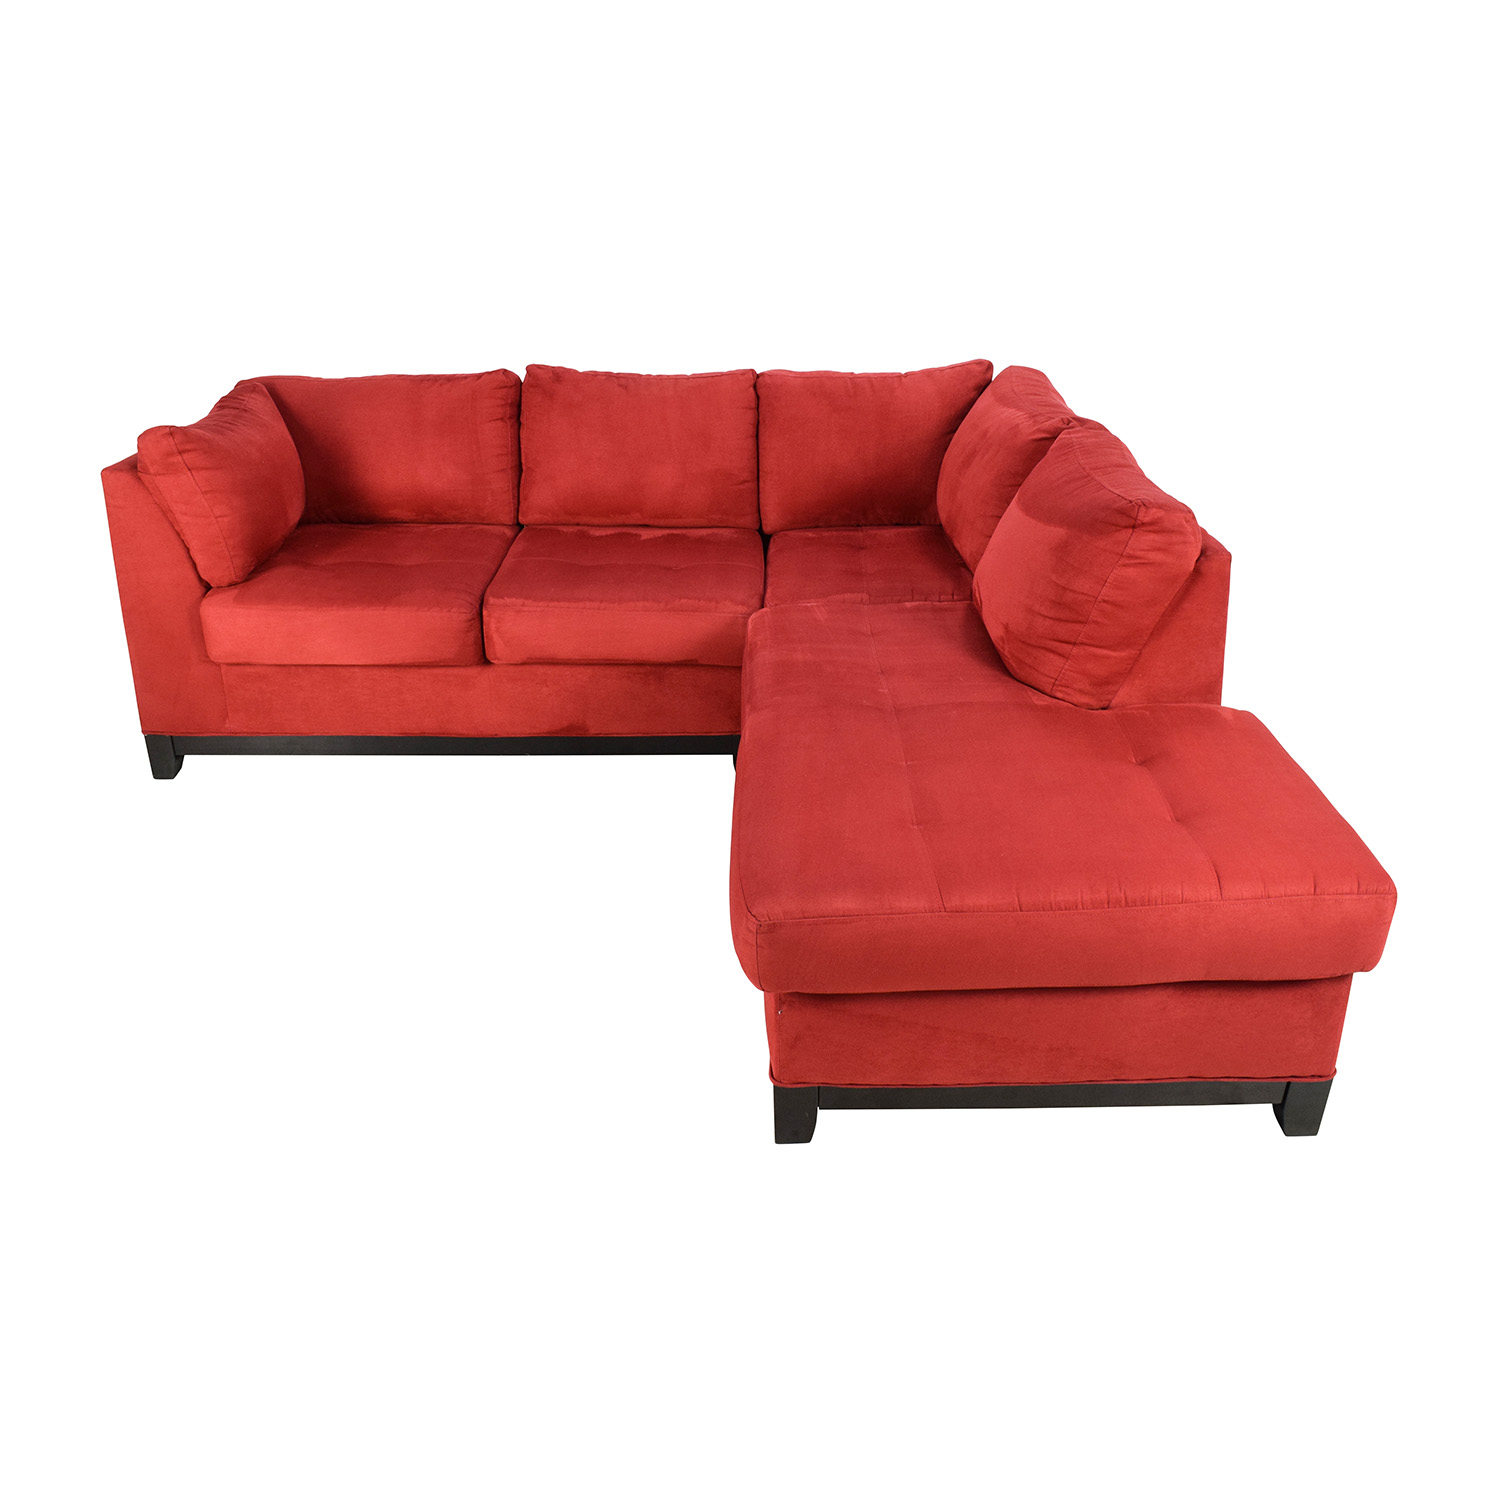 67% OFF - Raymour & Flanigan Raymour & Flanigan Zella Red Sectional / Sofas